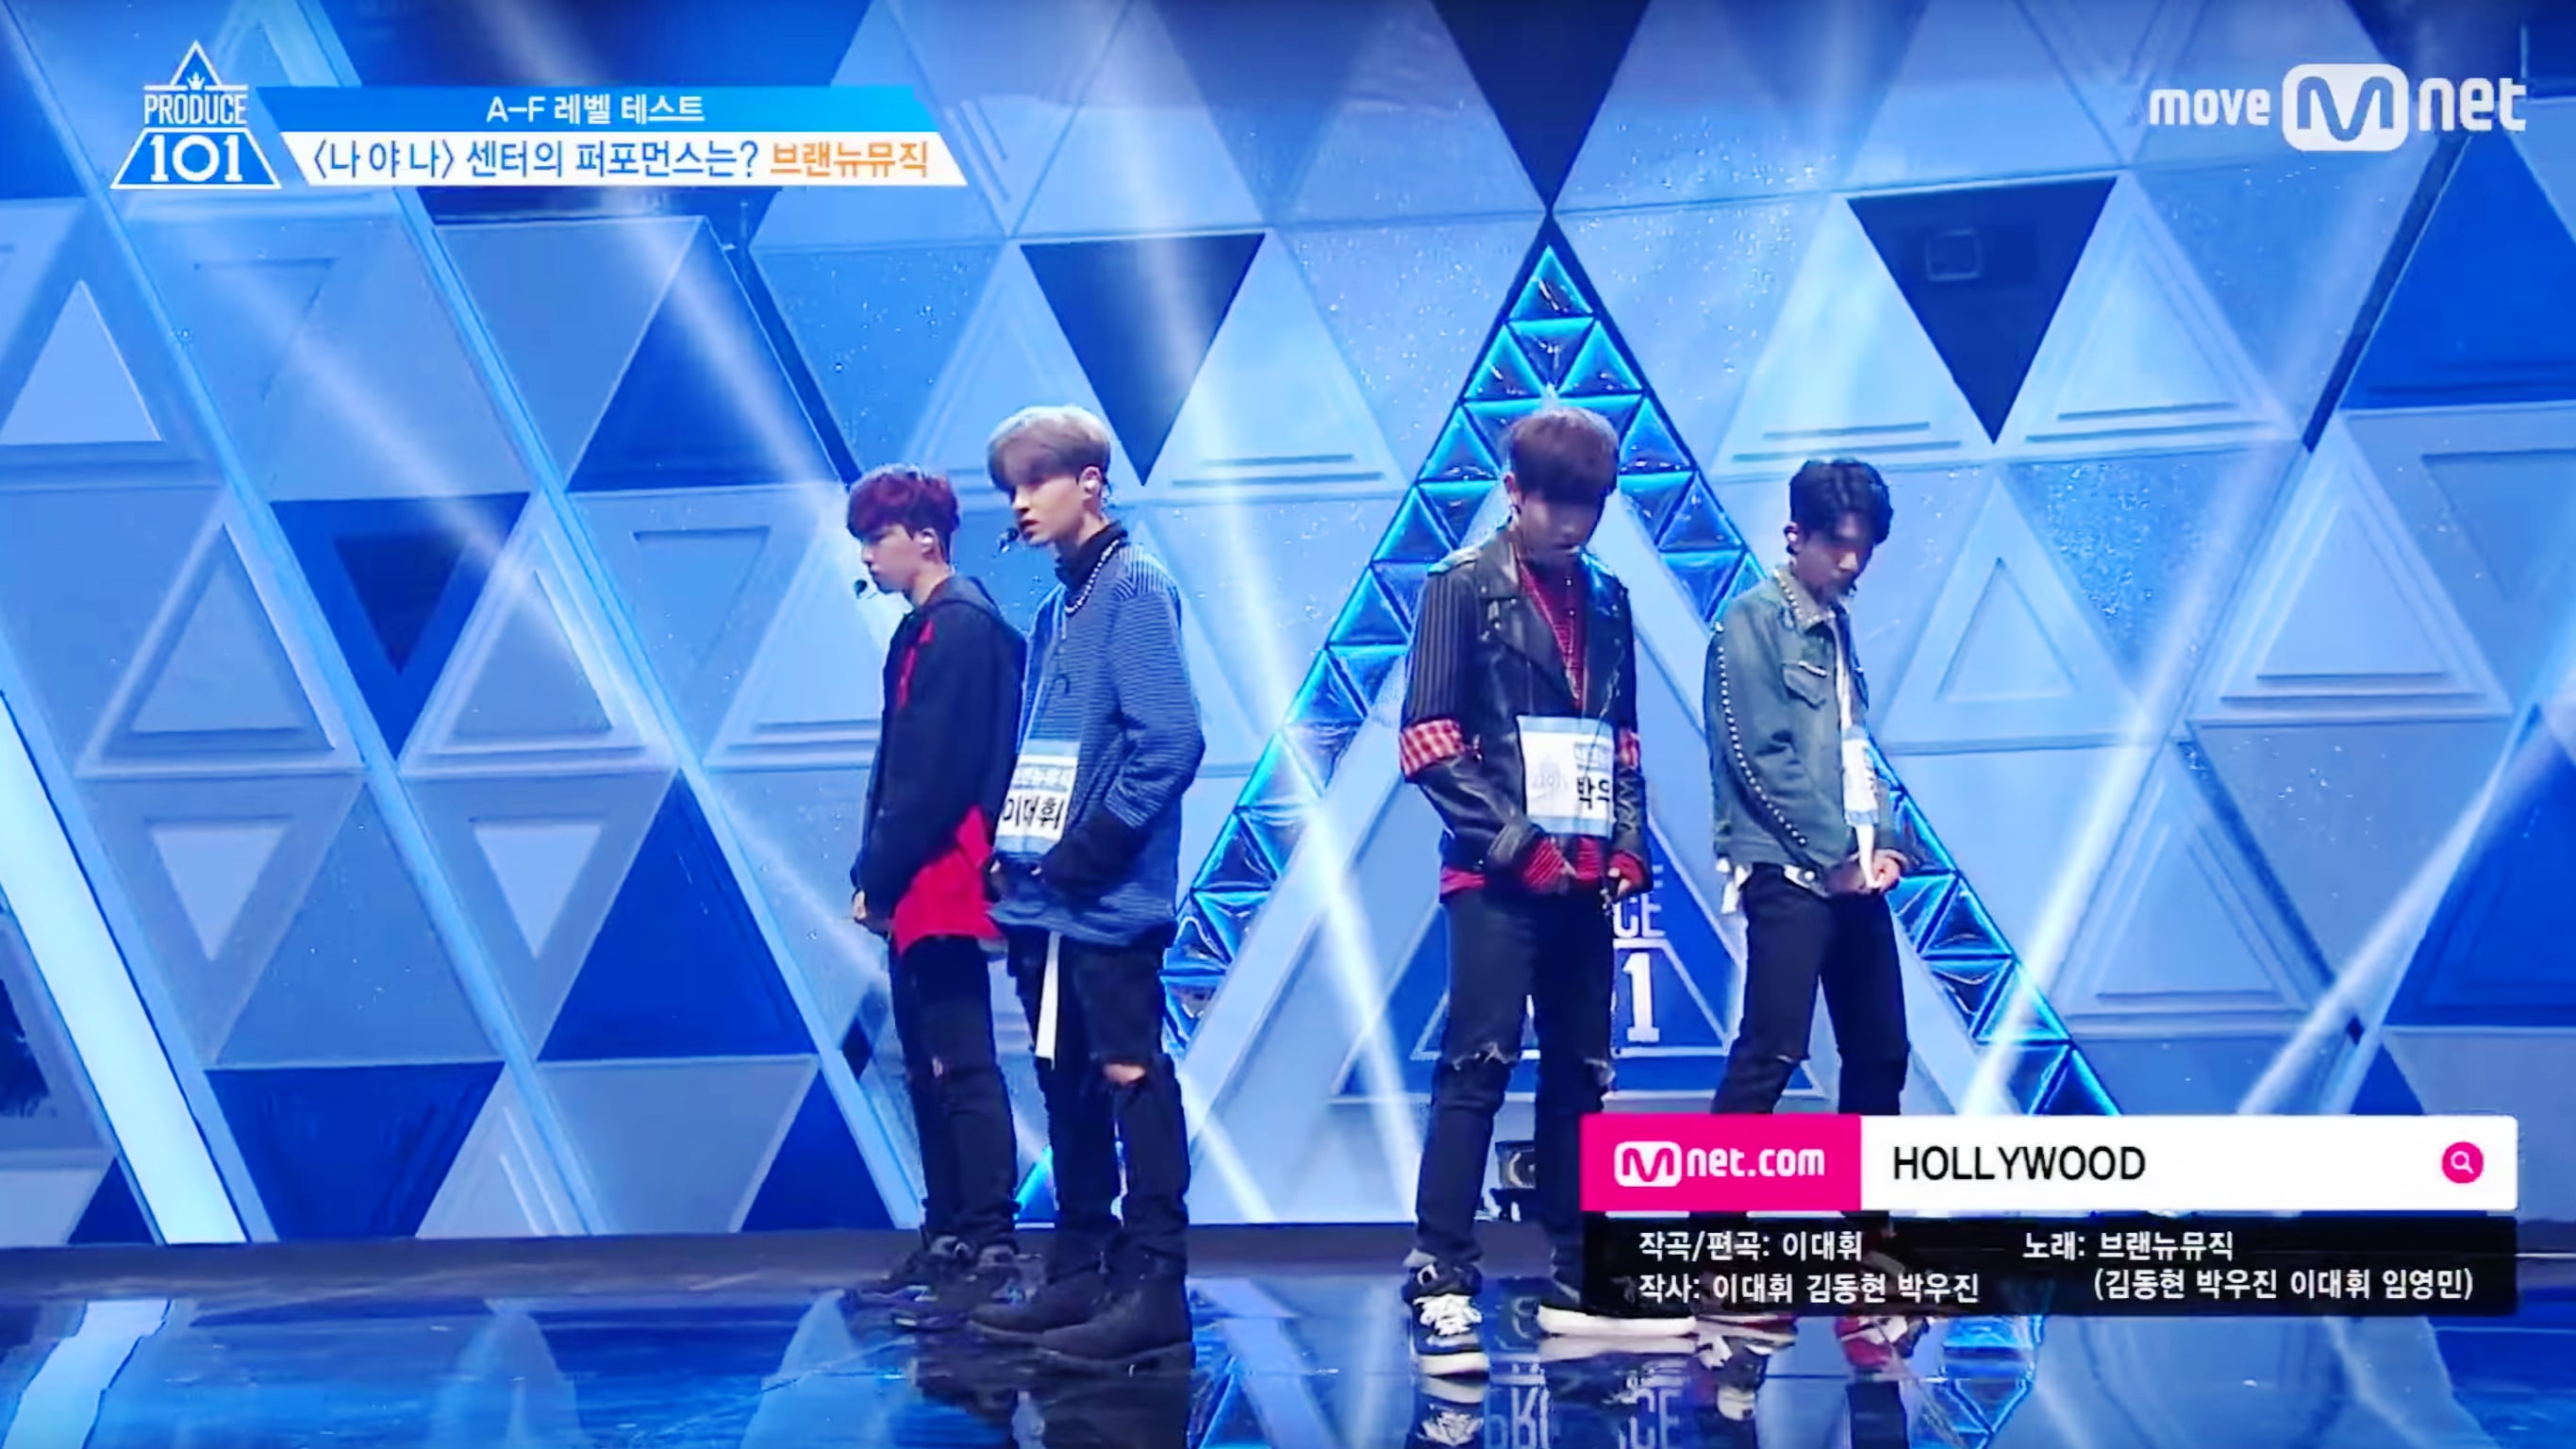 Produce 101 Season 2 trainees sexually abused by Agency CEO